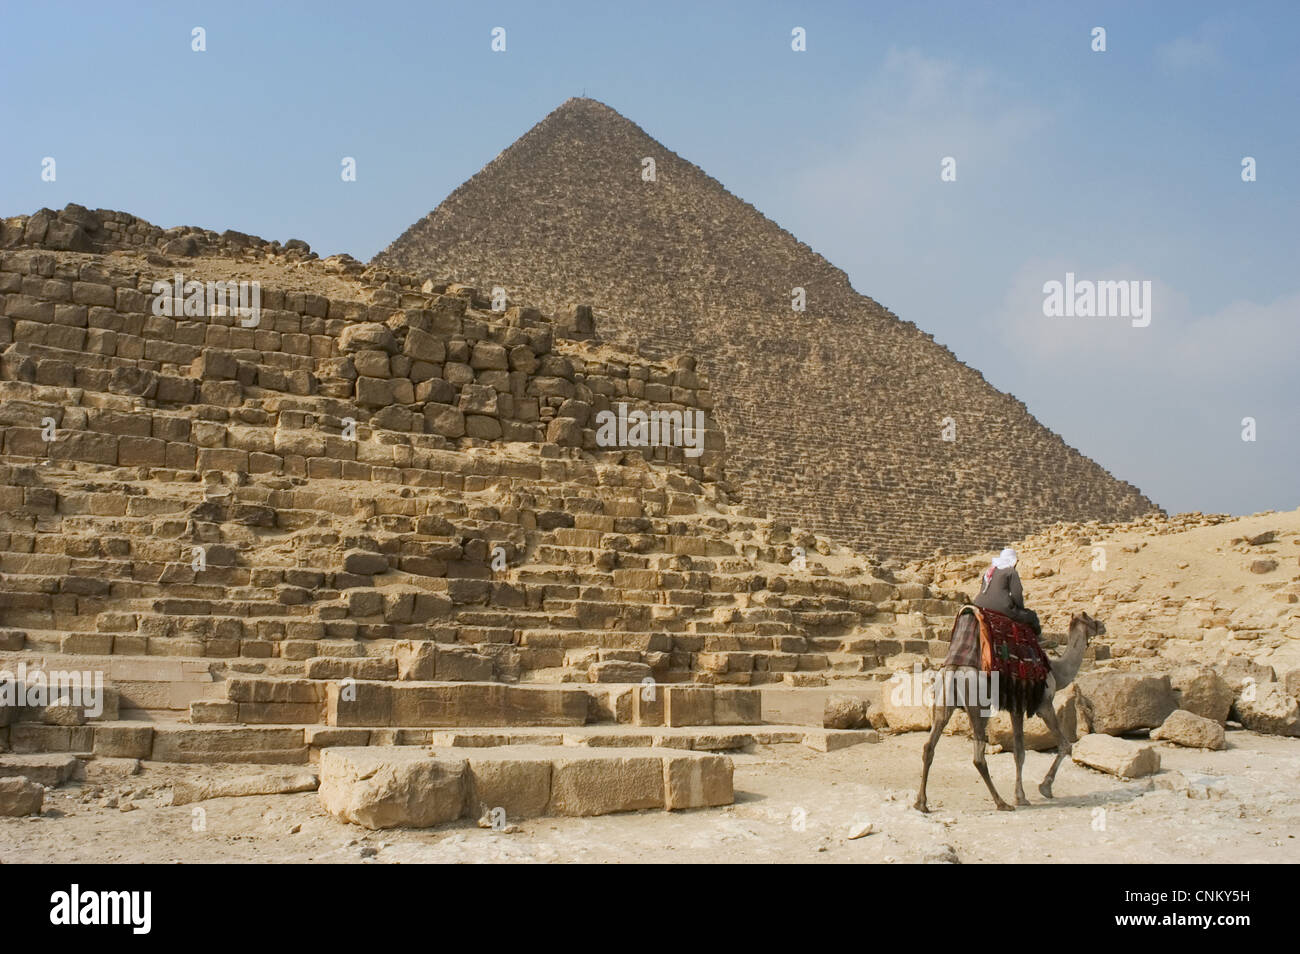 Egypt. Pyramid G1-b located to the eastern side of the Great Pyramid of Giza or Pyramid of Khufu (at the background).Old - Stock Image